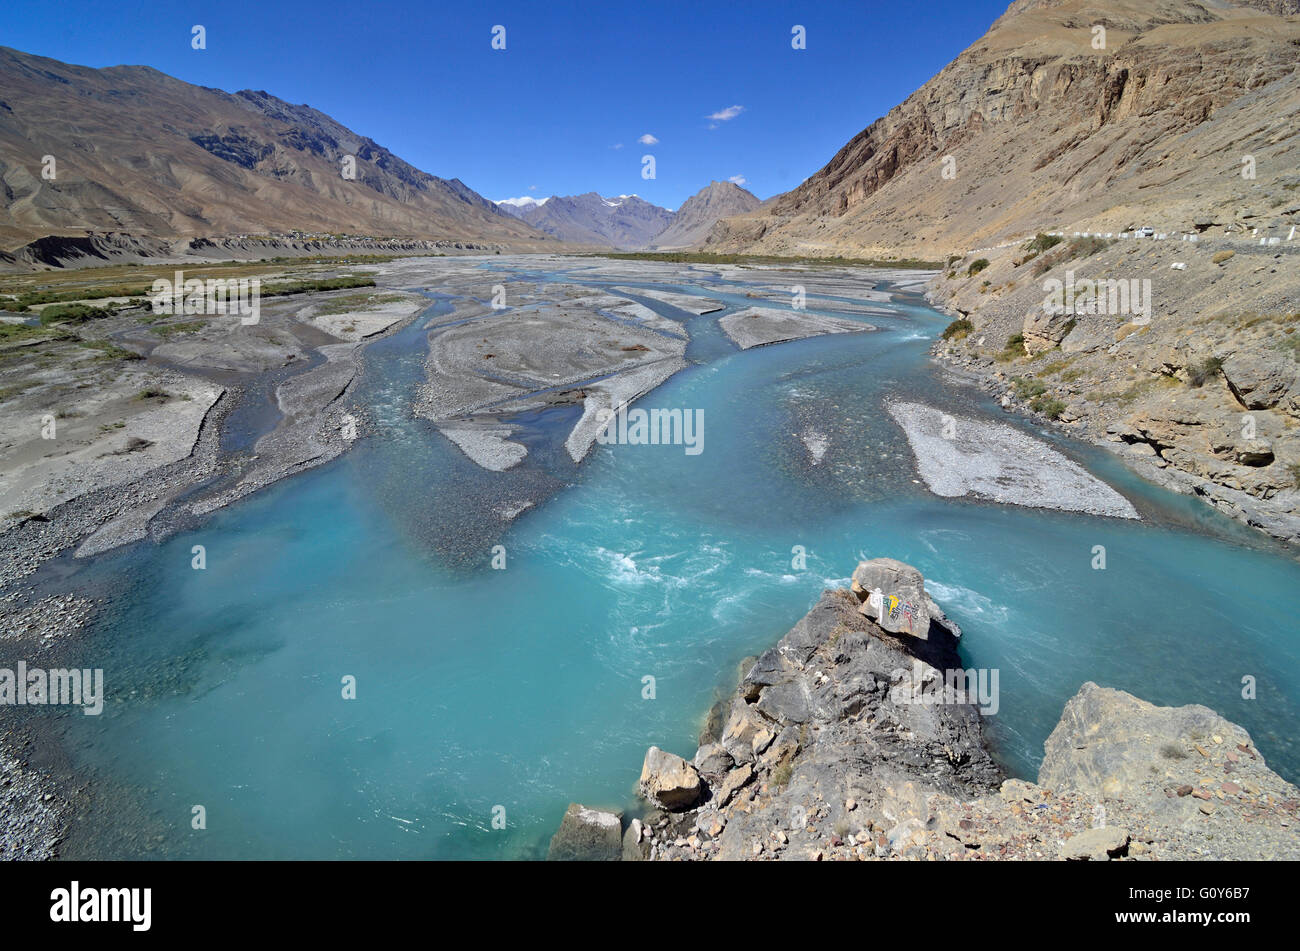 Spiti river flowing through the high altitude himalayan valley at 4270 meters, near Kaza, Lahaul and Spiti, Himachal - Stock Image